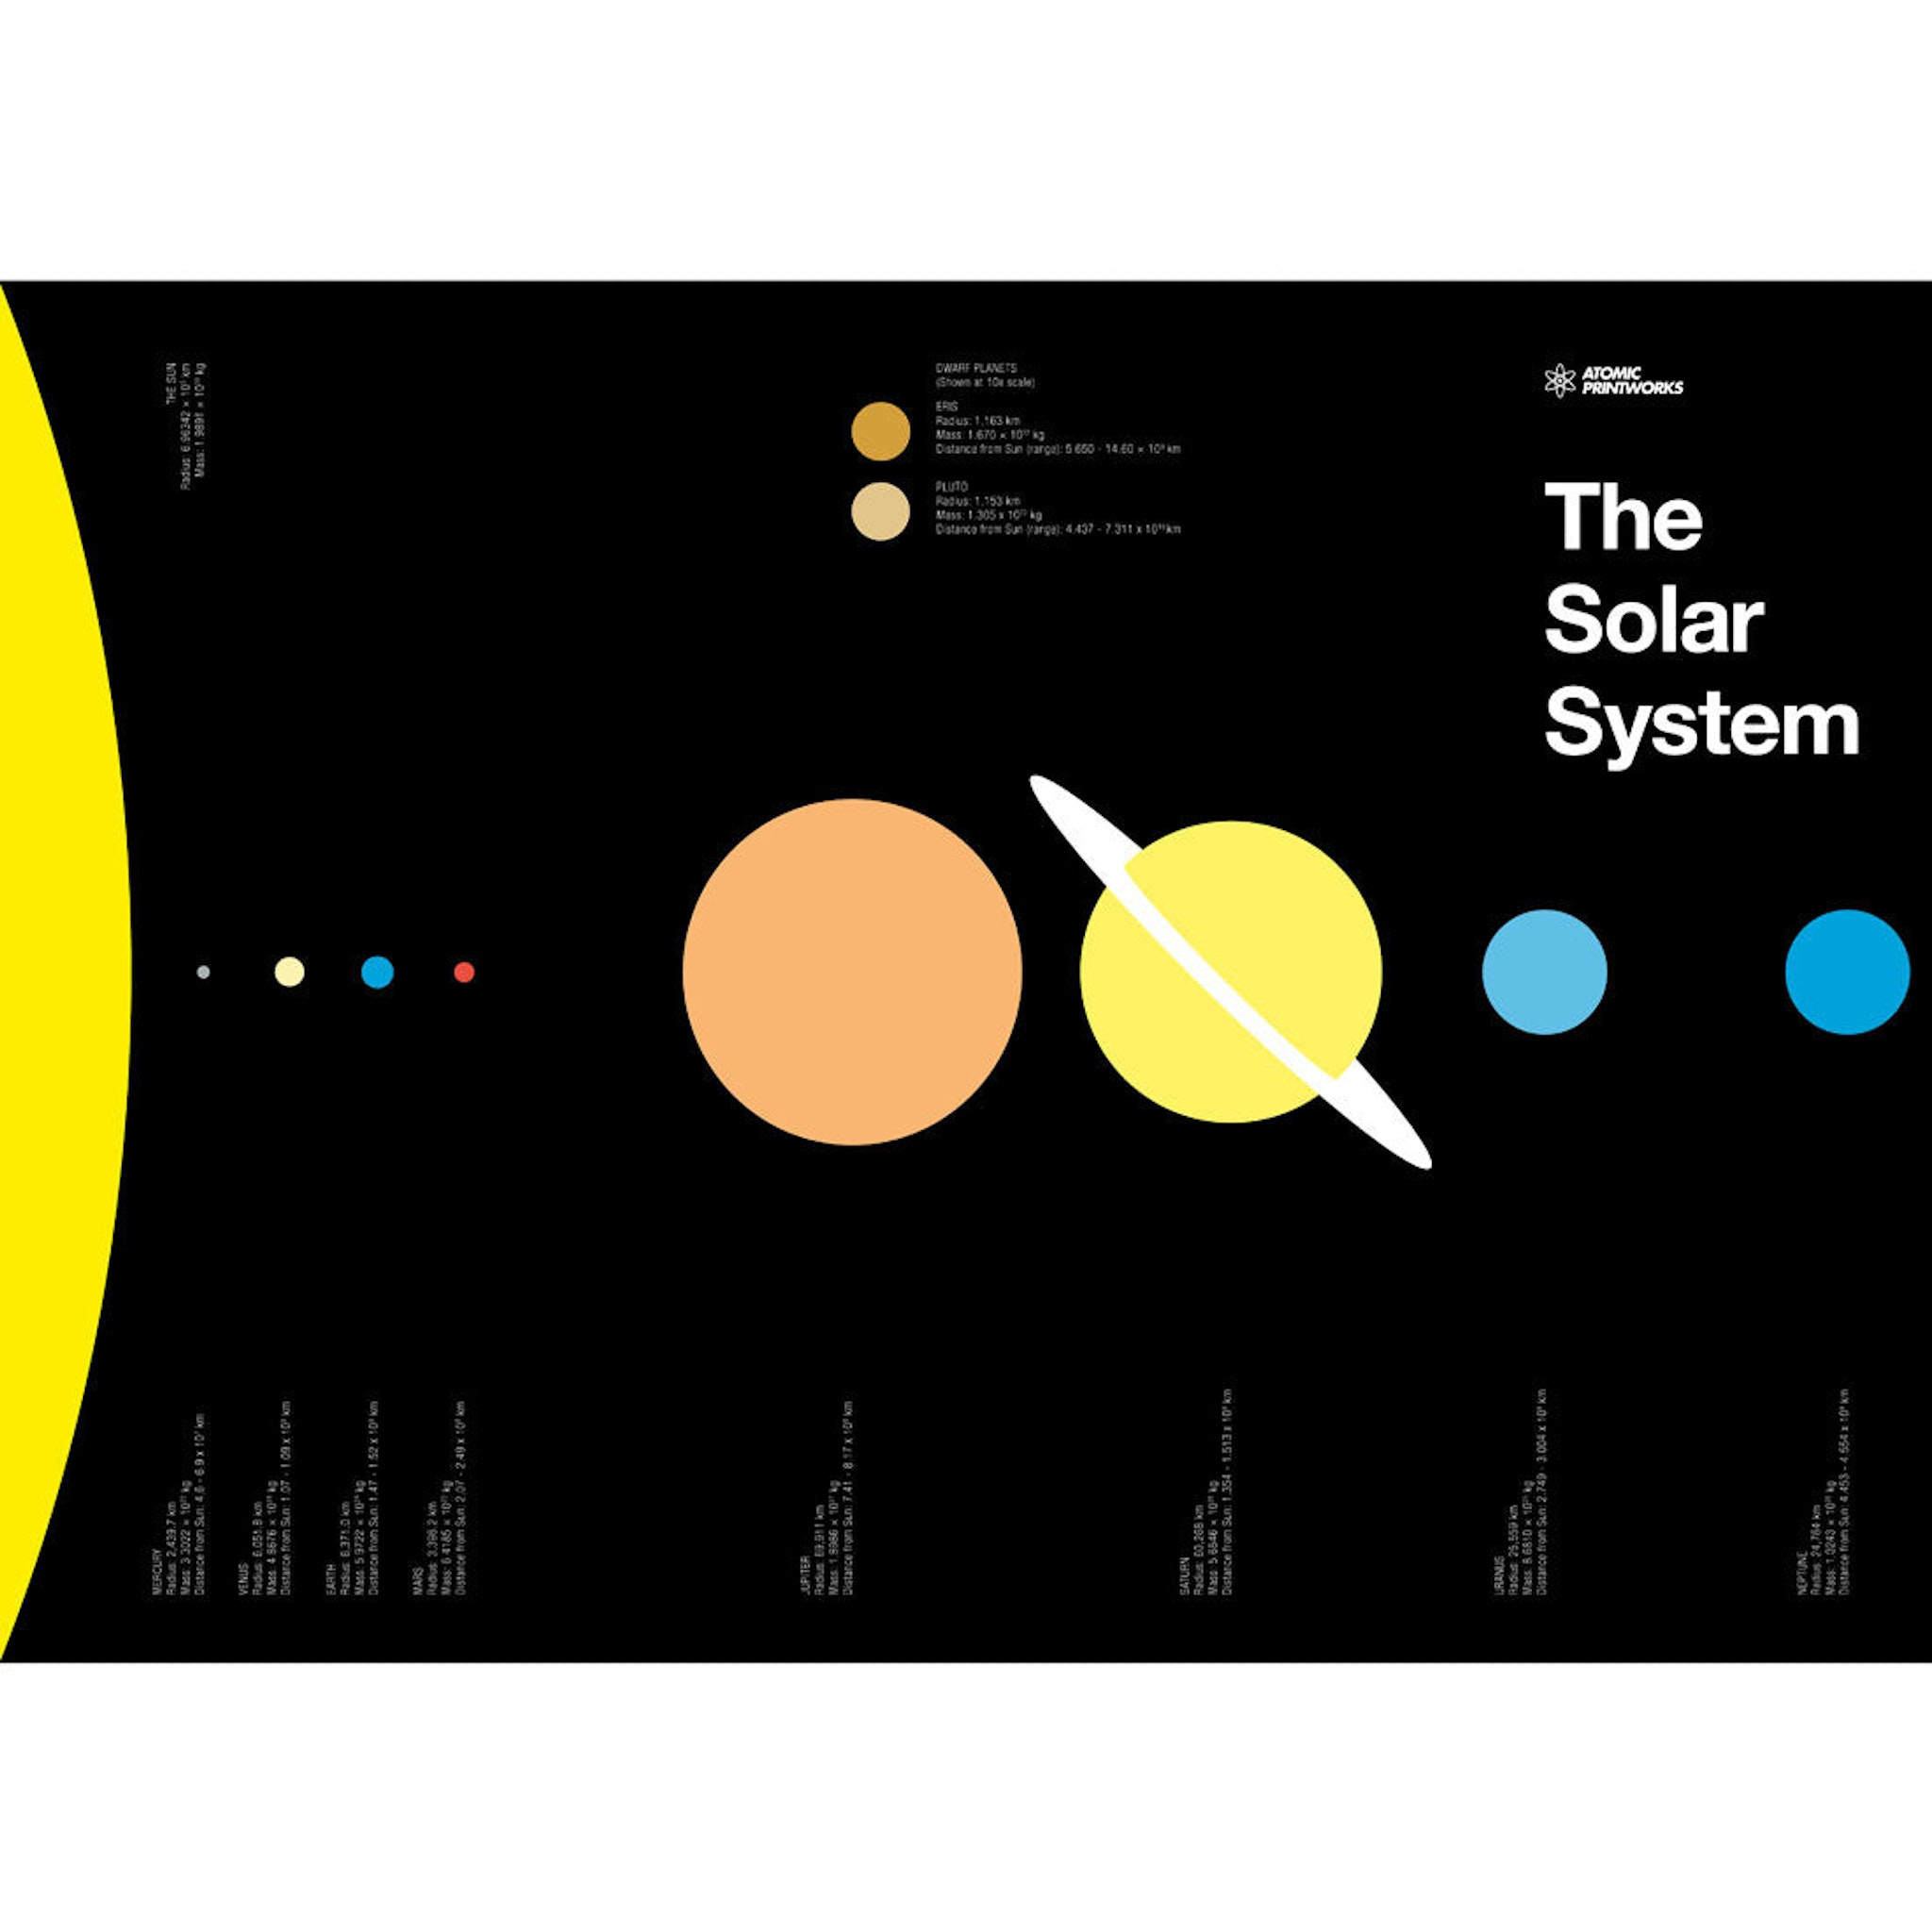 Solar System by Atomic Printworks